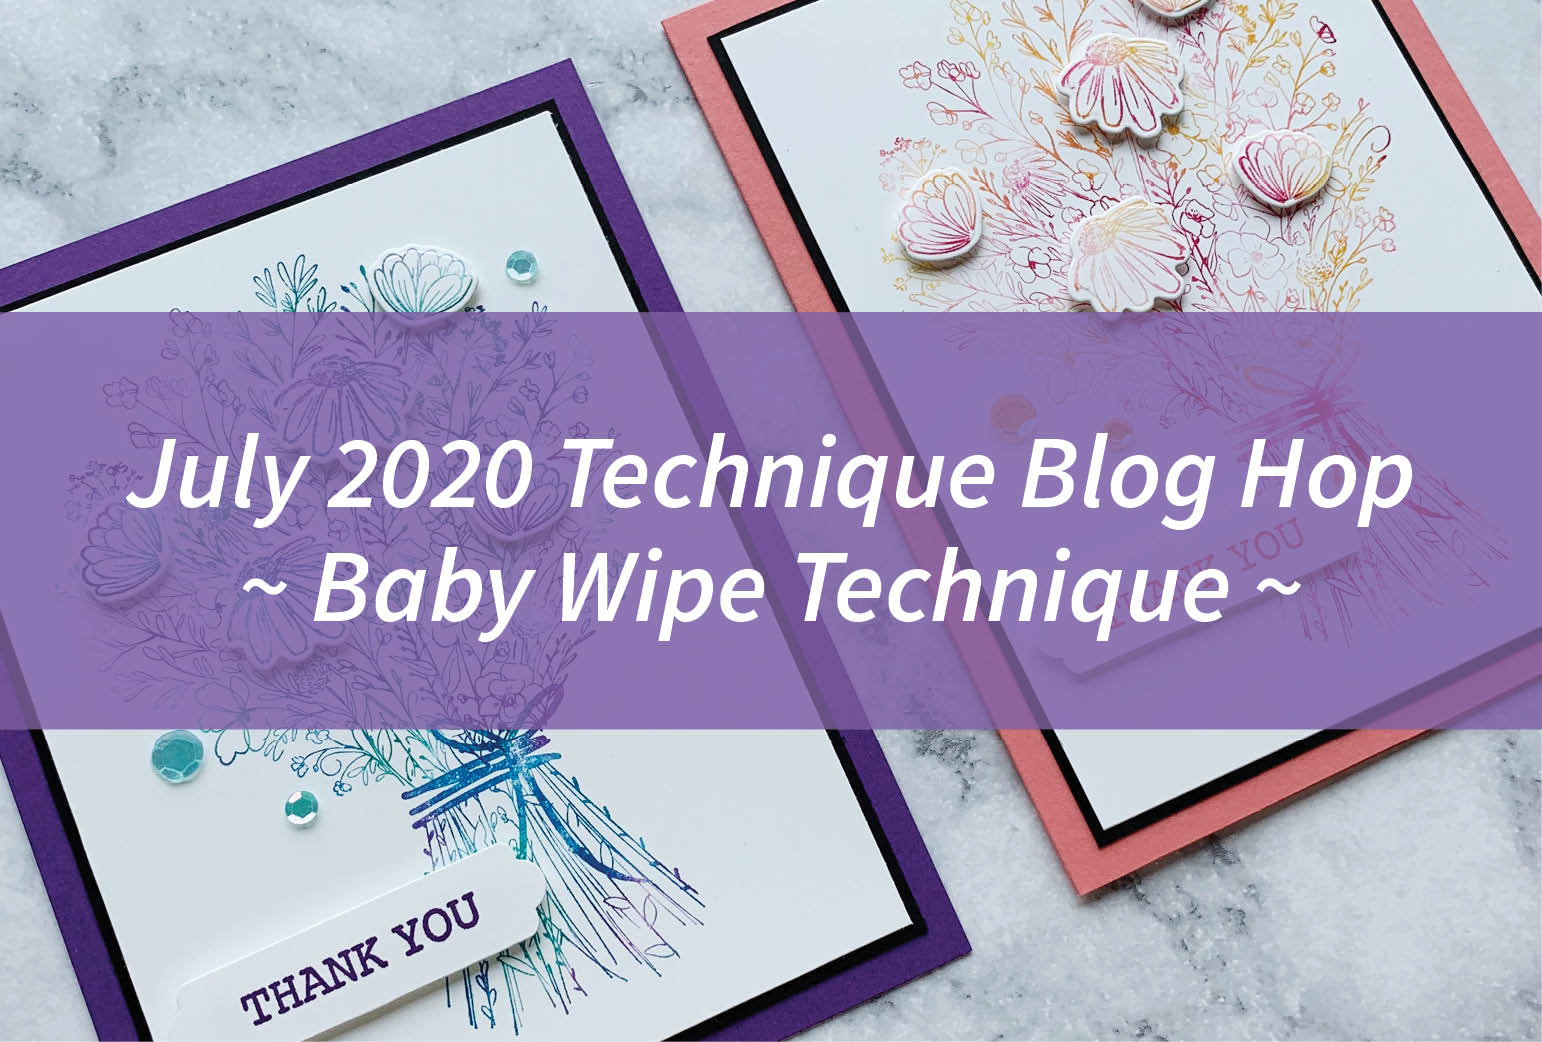 July 2020 Technique Blog Hop – Baby Wipe Technique